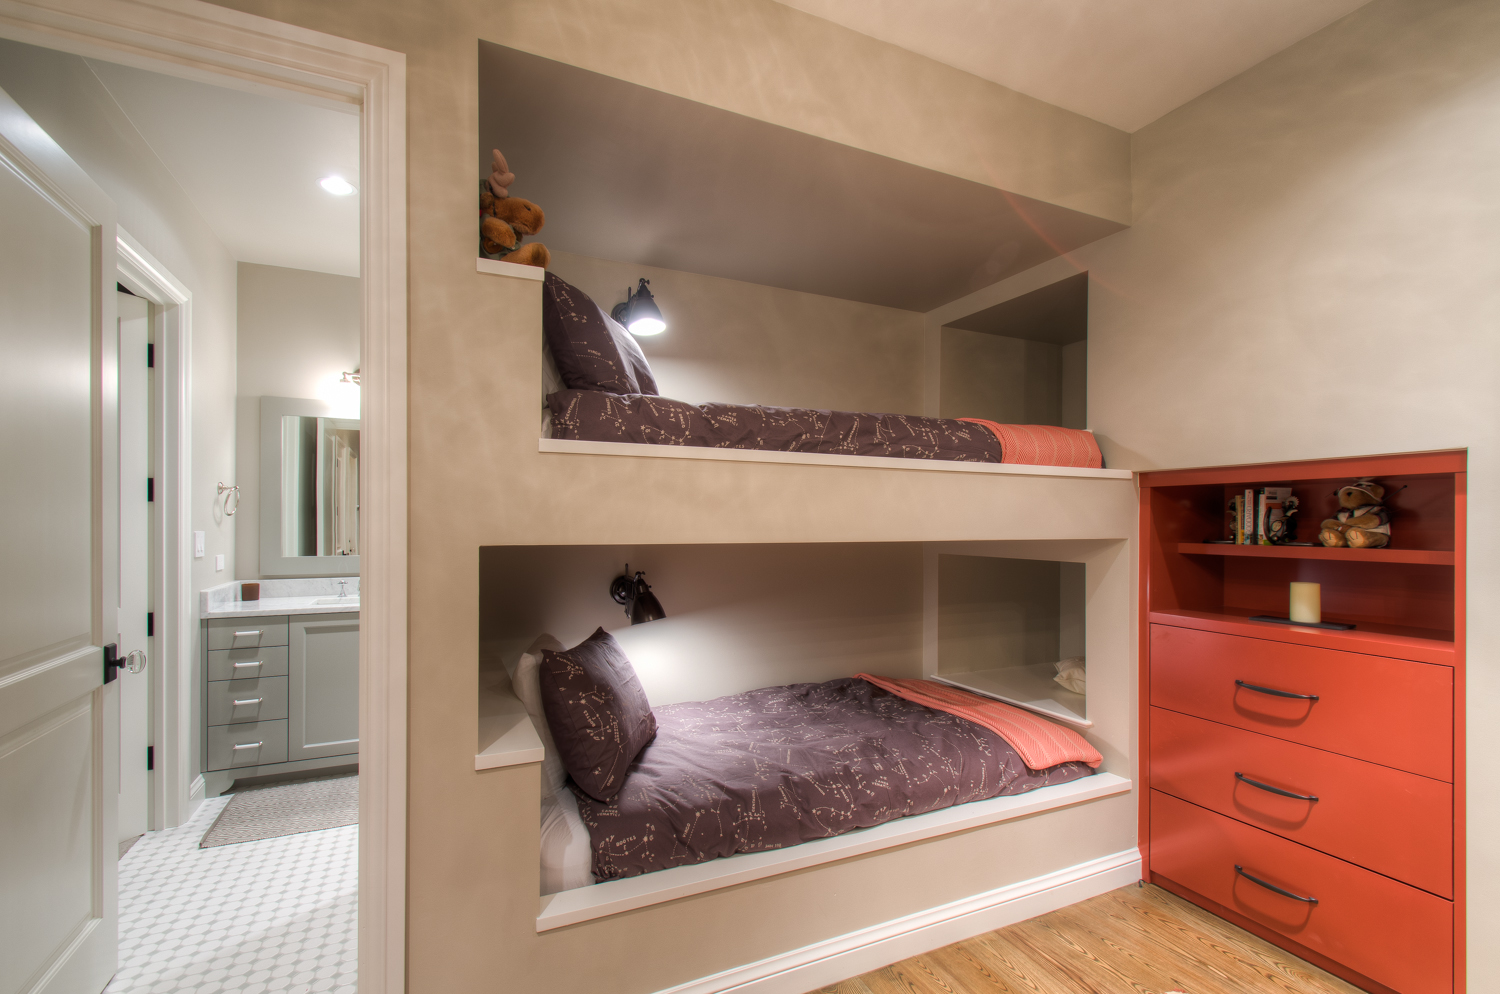 In-wall Twin Beds with Storage Cubbies and Built-ins